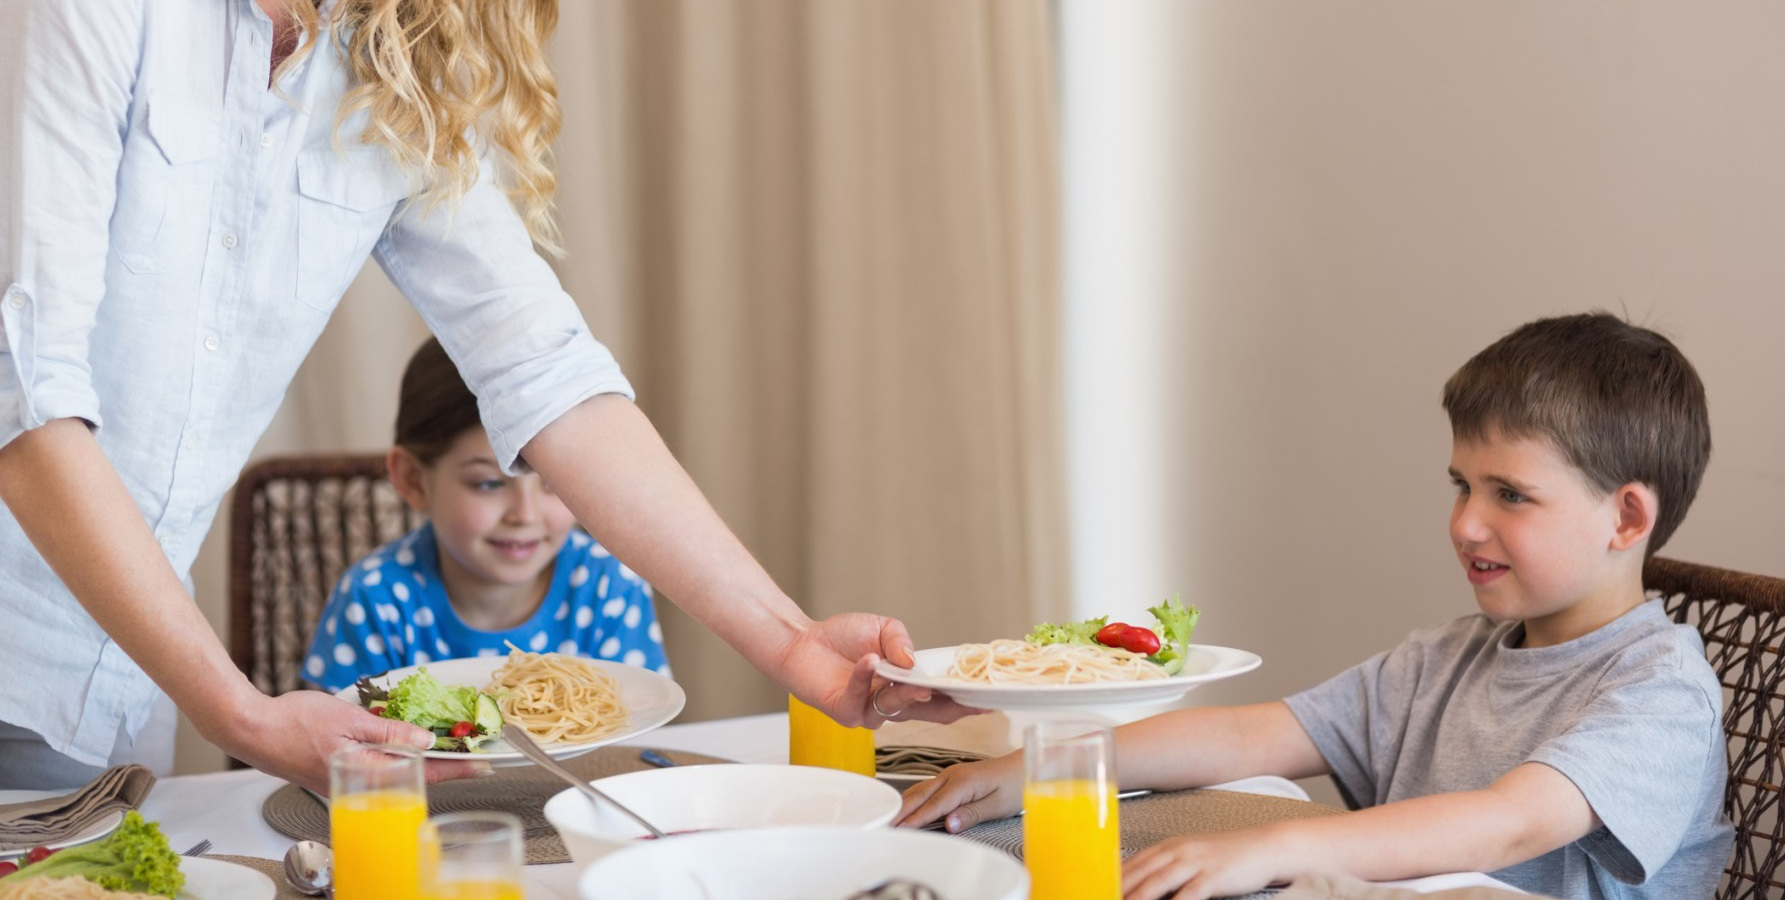 A new U of A study found that helping kids manage their weight requires individualized strategies. (Thinkstock)